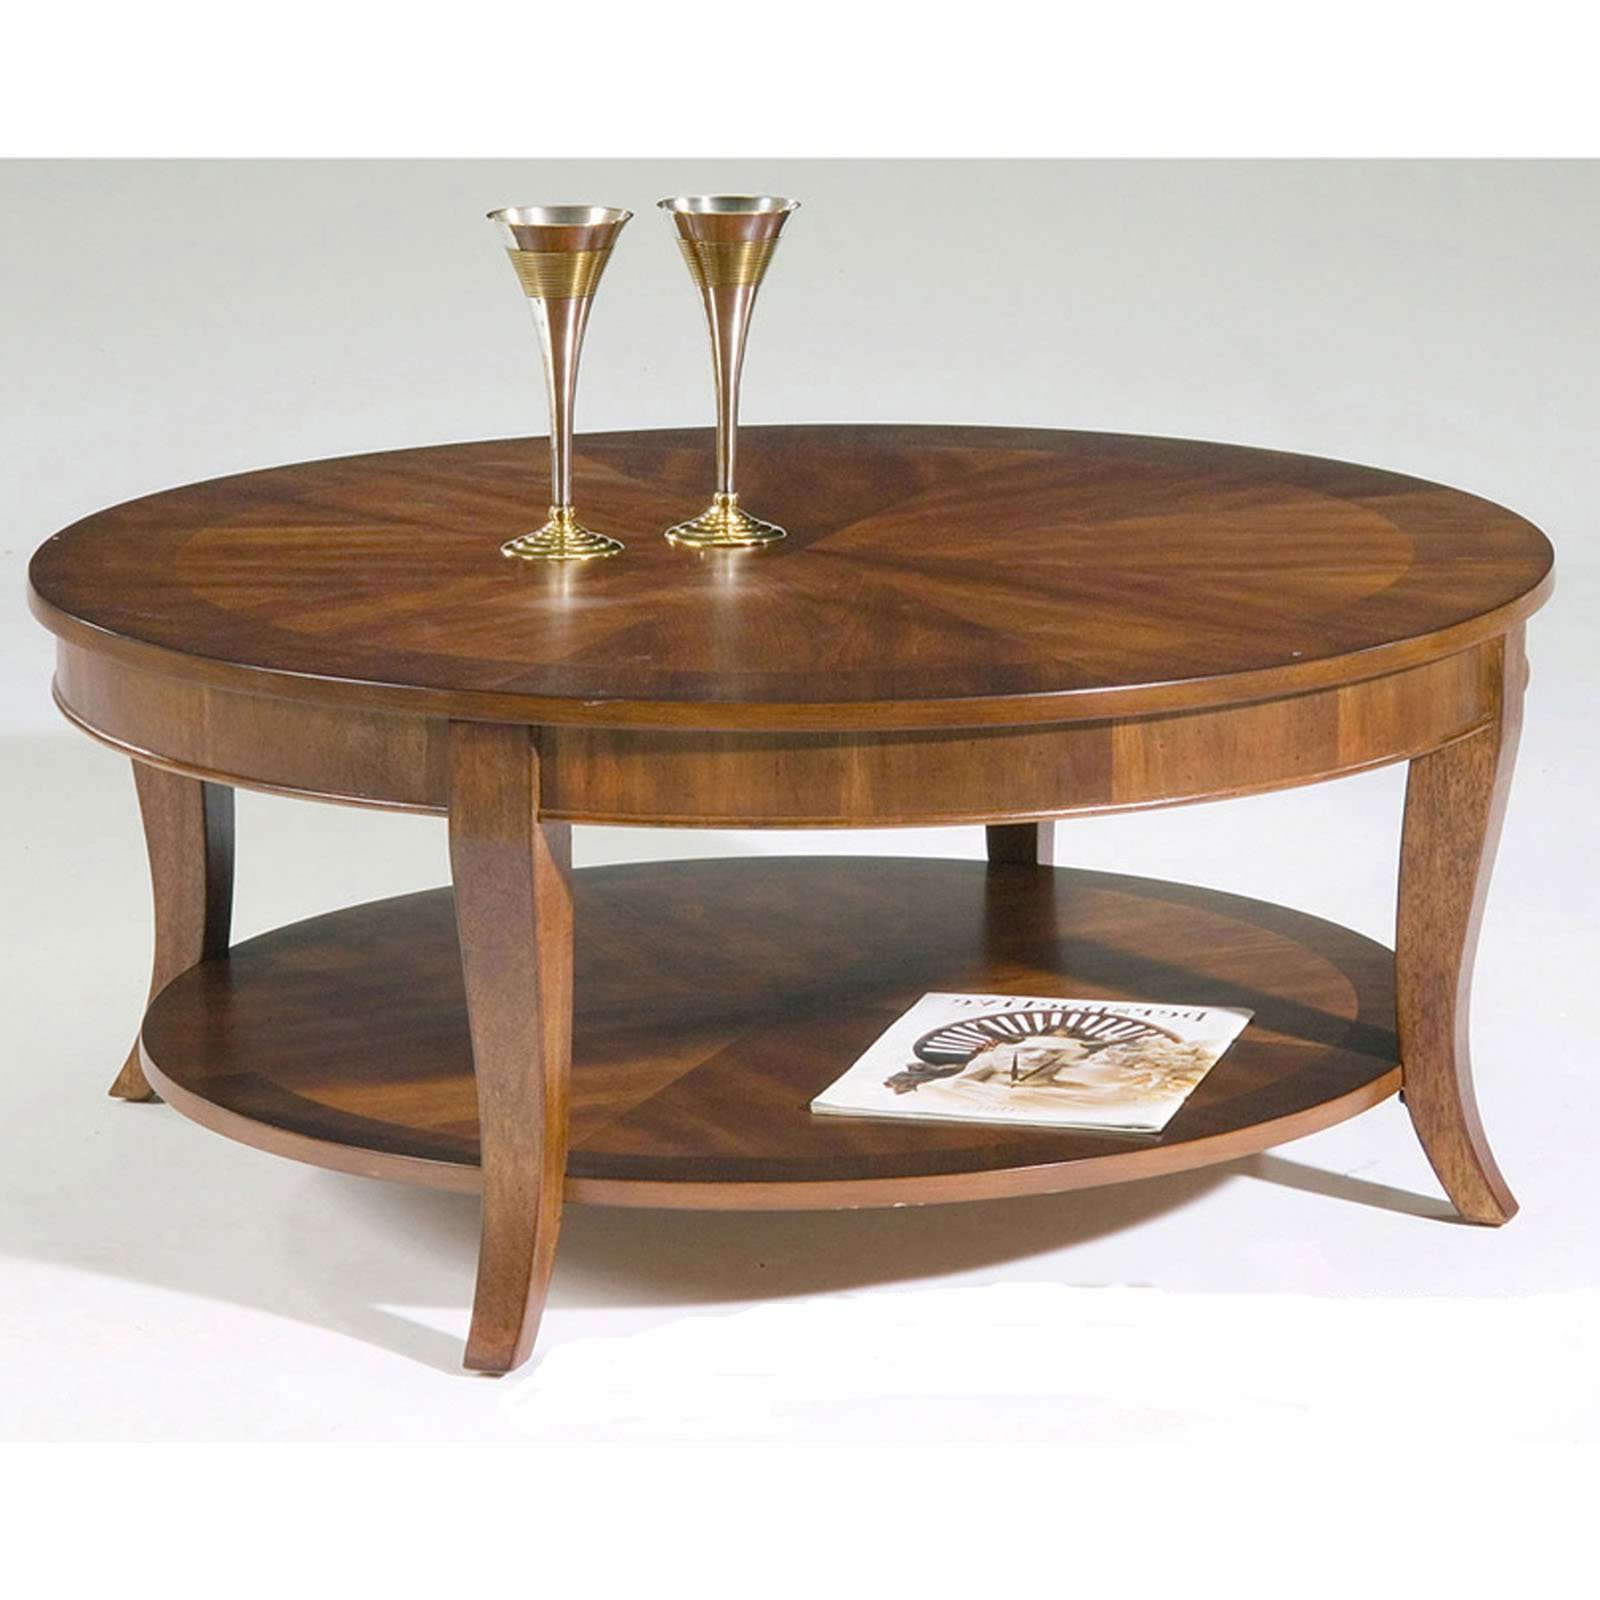 Widely Used Half Circle Coffee Tables Throughout Coffee Tables : Small Round Coffee Table Barnwood Ottoman Seat (View 20 of 20)